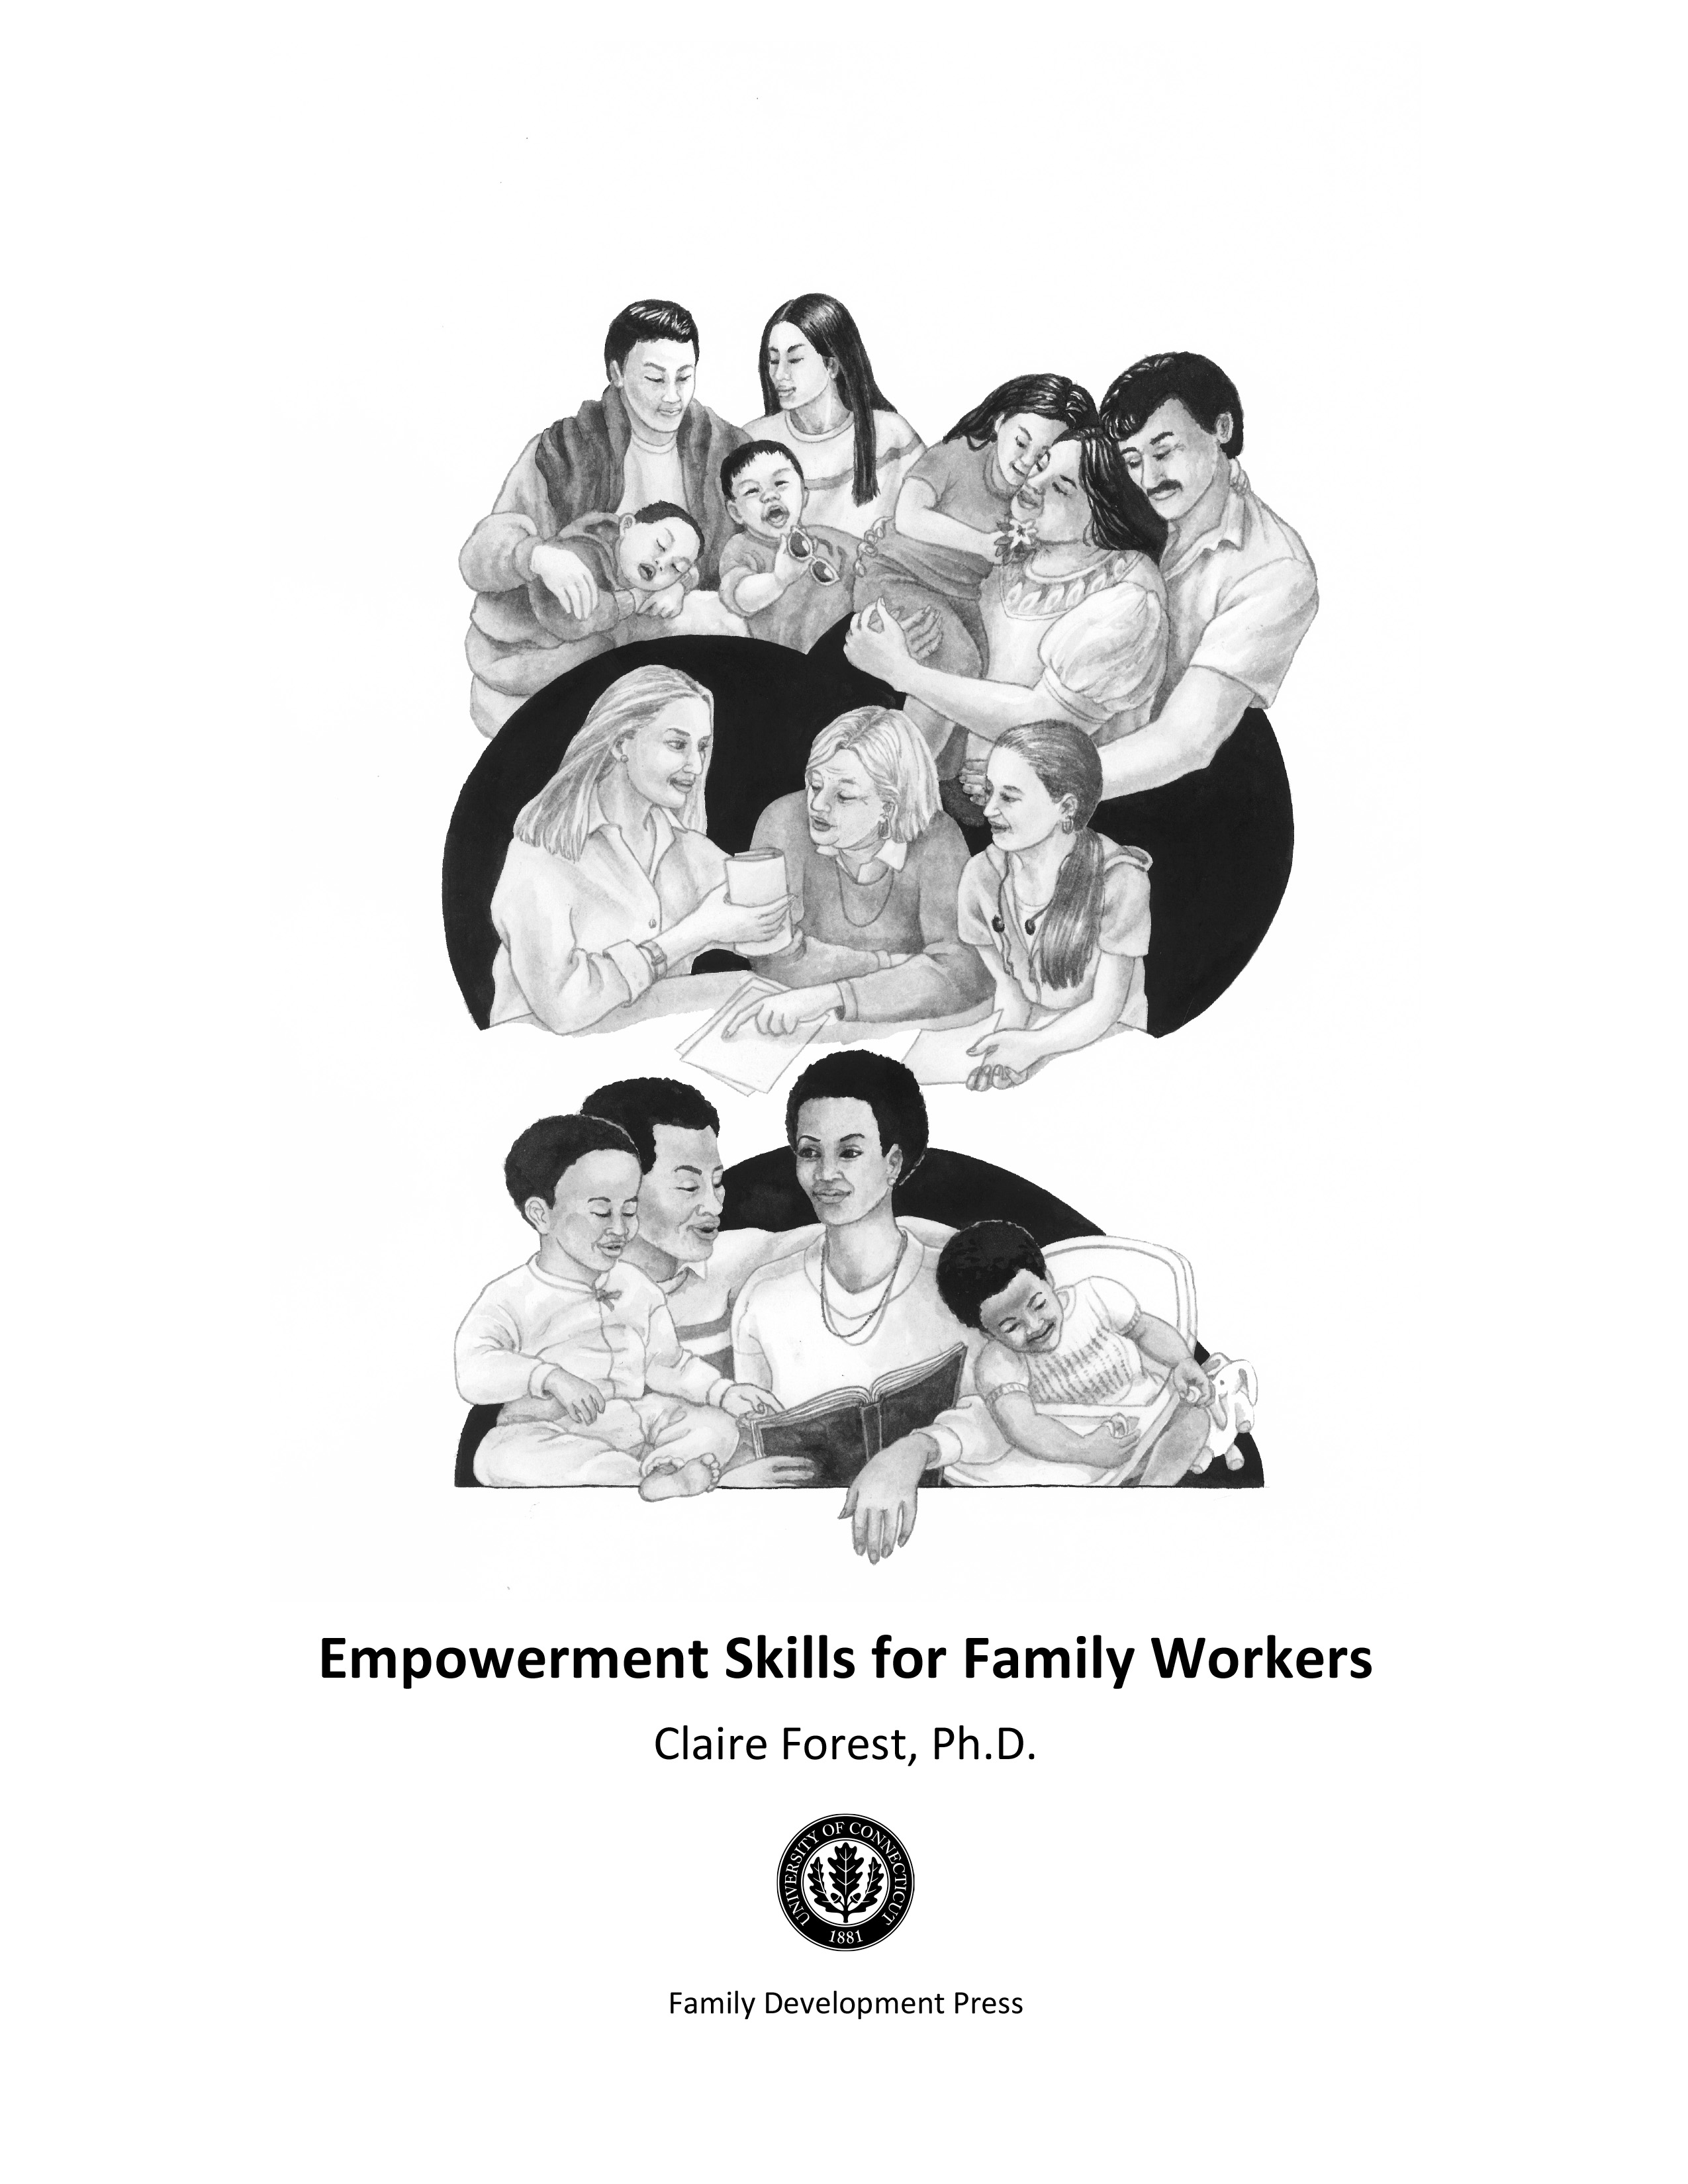 Empowerment Skills for Family Workers